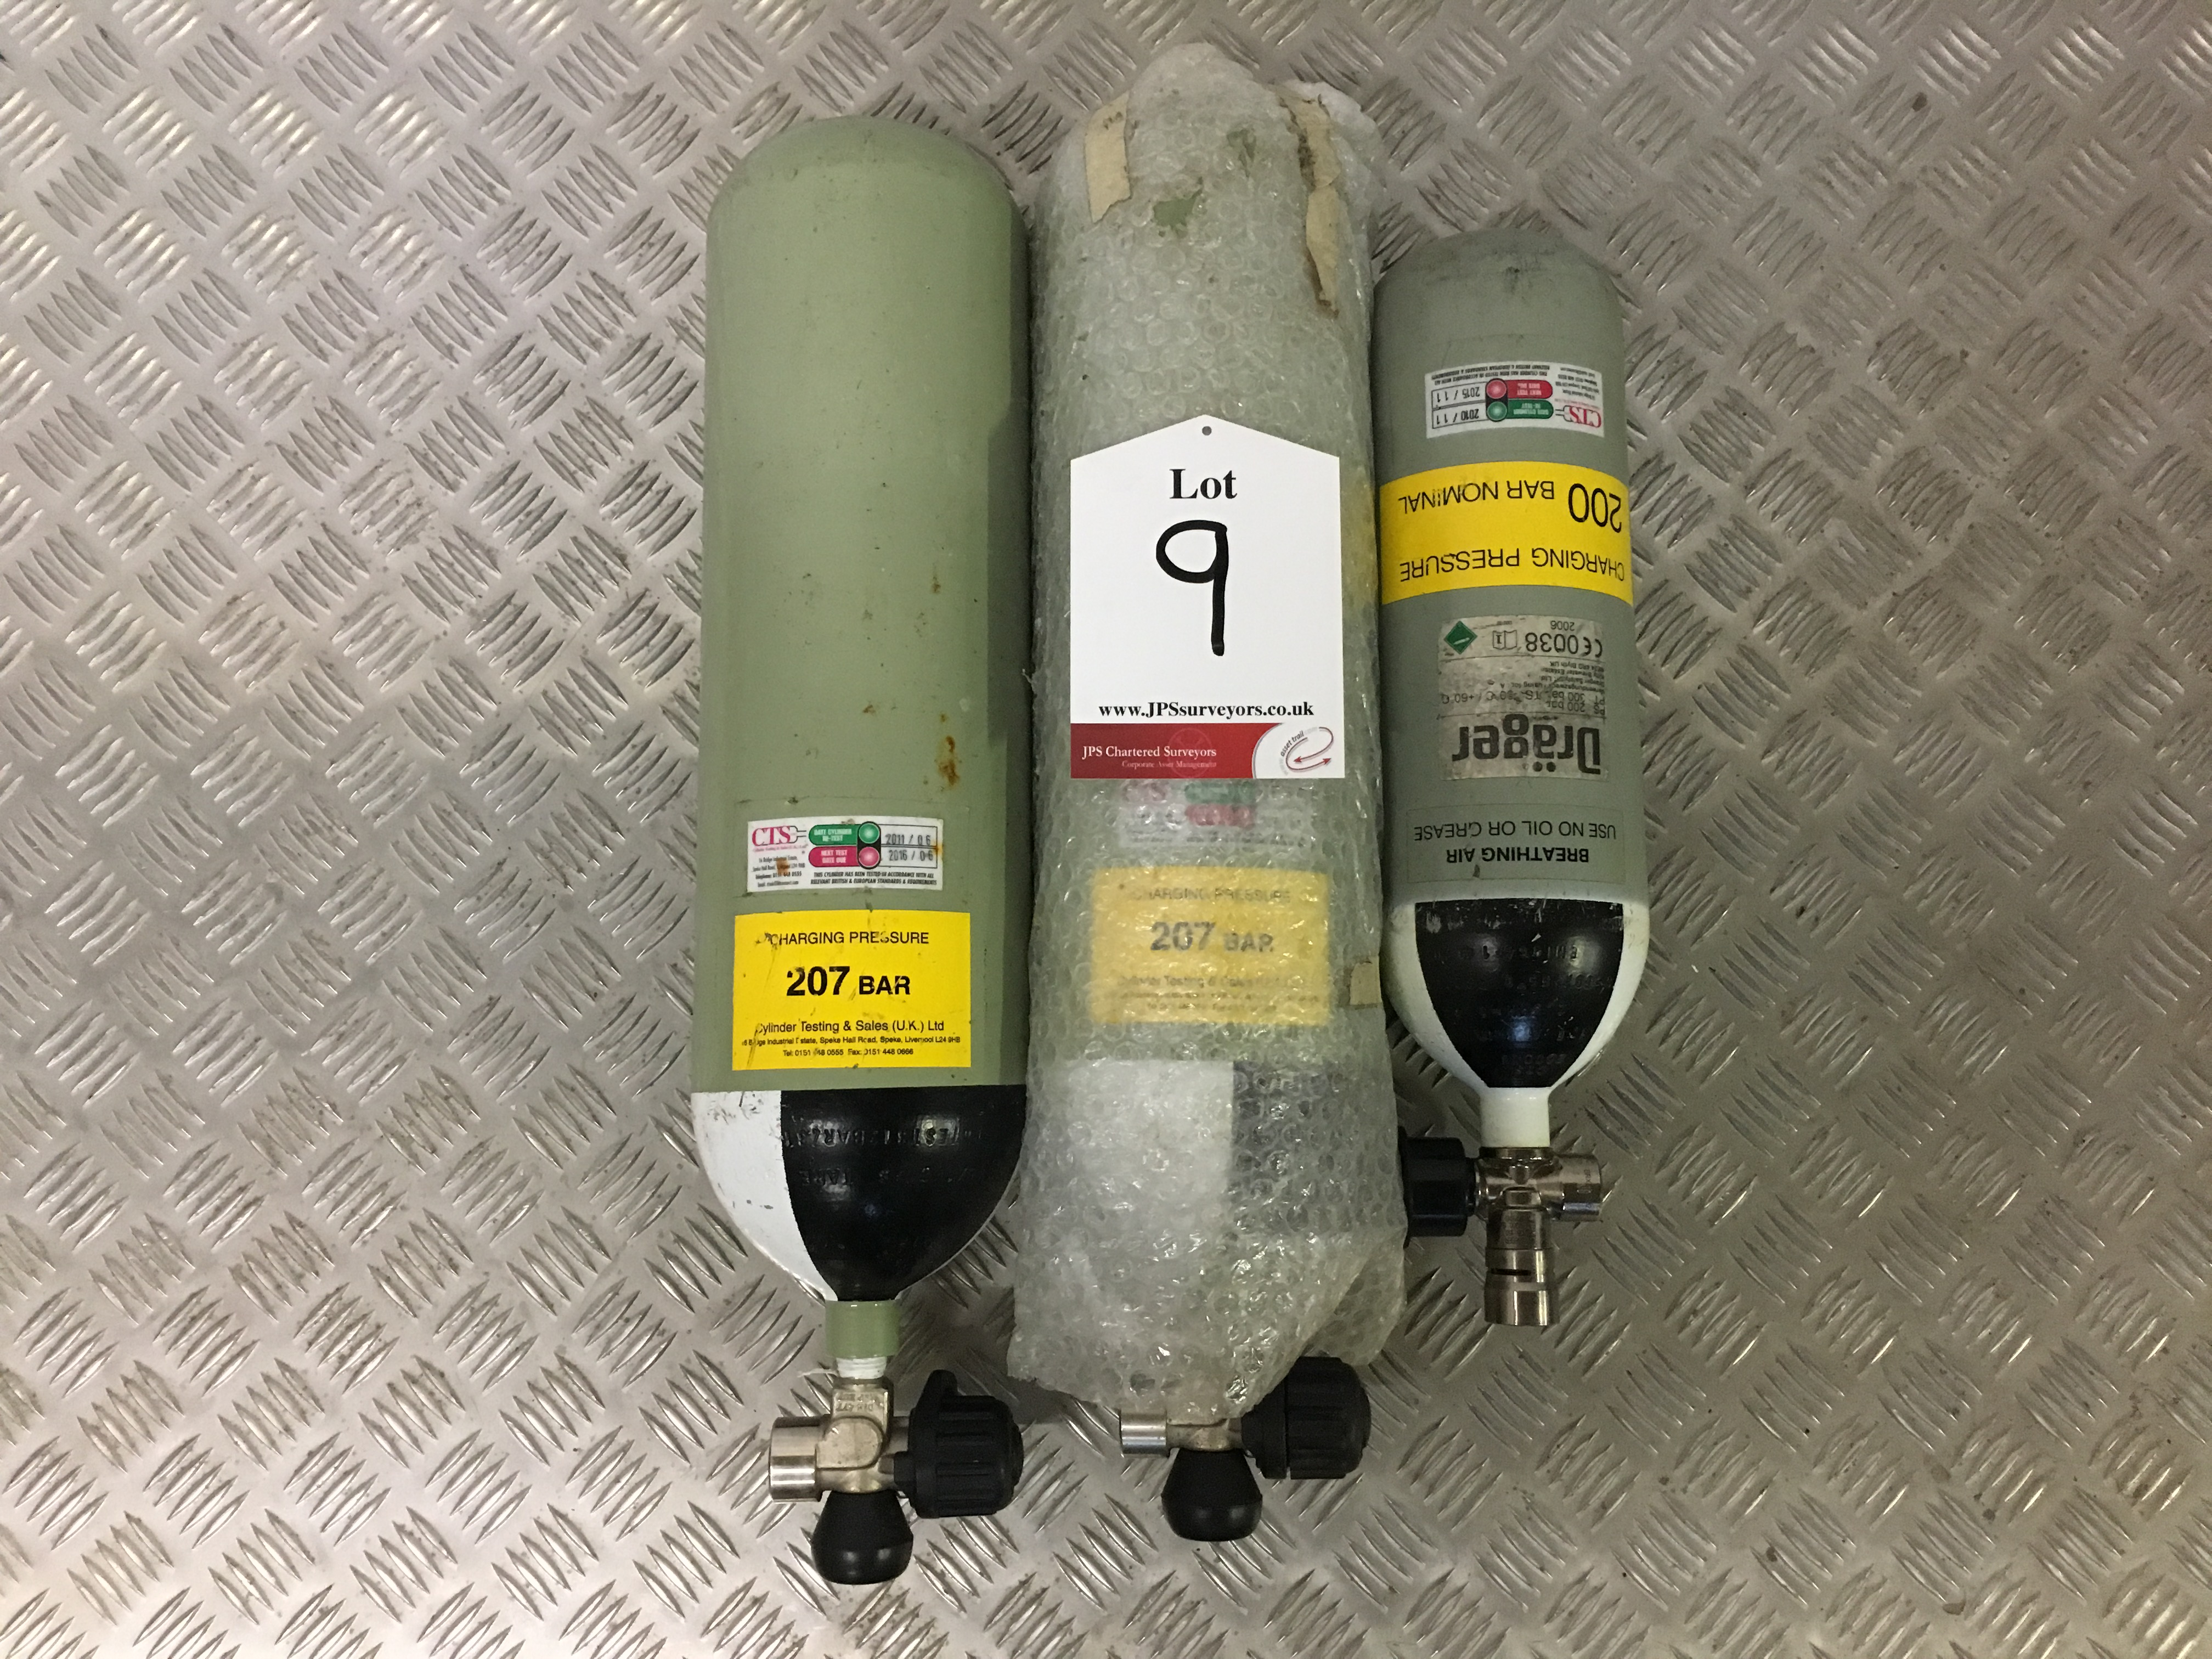 Lot 9 - 2 x Sabre 200 Bar Compressed Air Cylinder with Saver Valves and 1x Drager 3L Compressed Air Cylinder